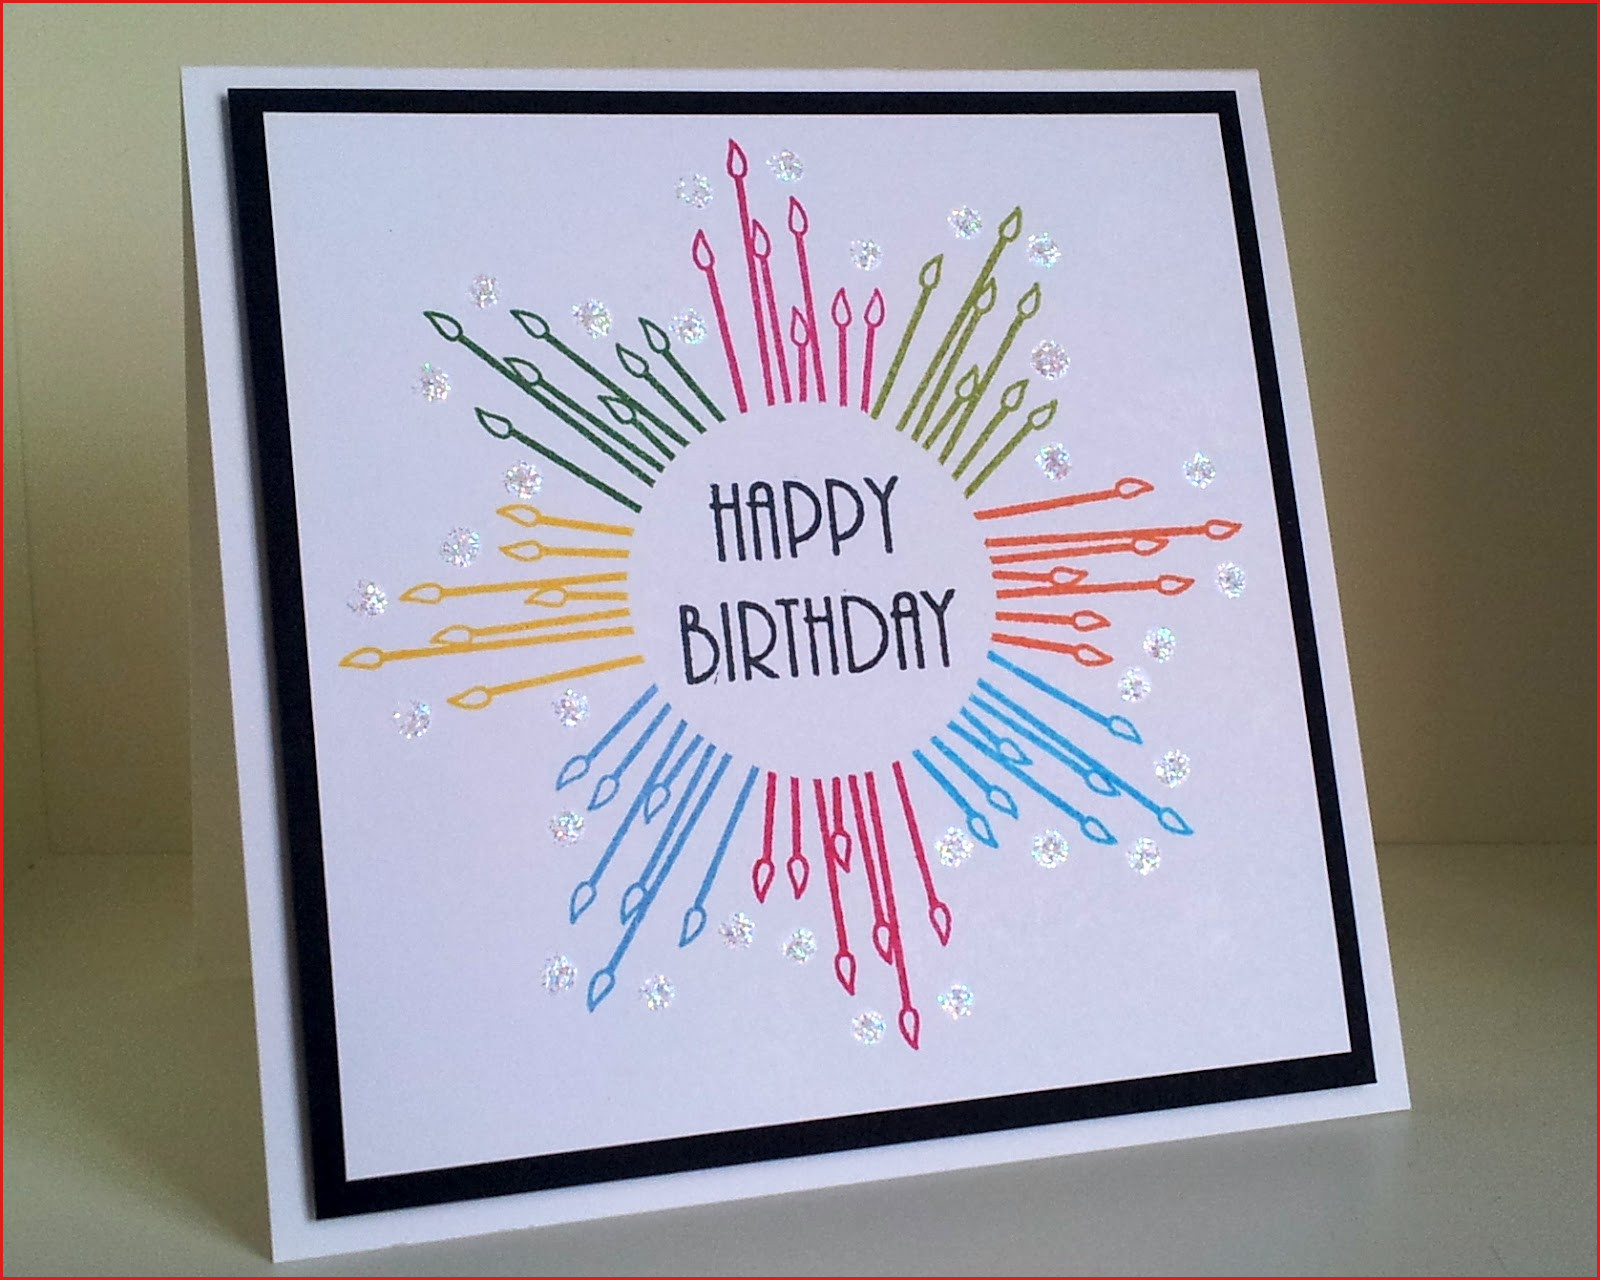 Homemade Card Ideas For Dads Birthday Cool Birthday Cards Funny Fathers Day Card Dad Birthday Card Cool